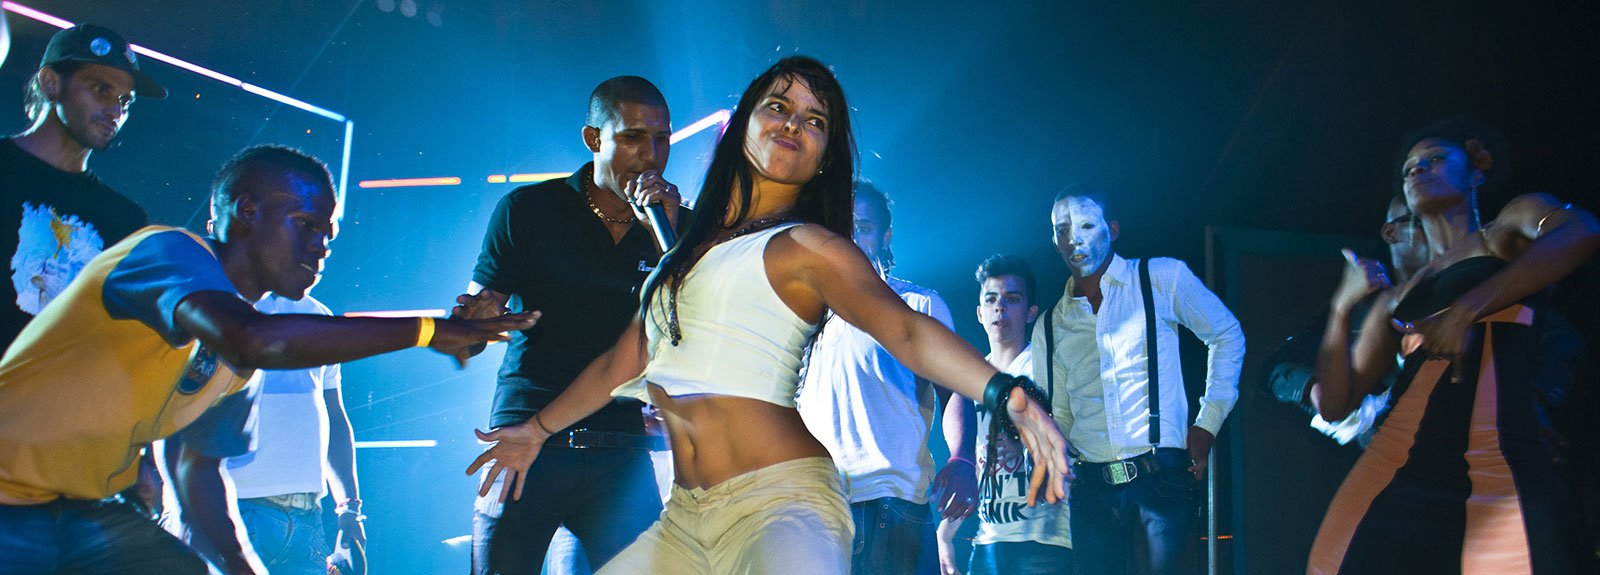 Girl in white dancing surround by people on a stage